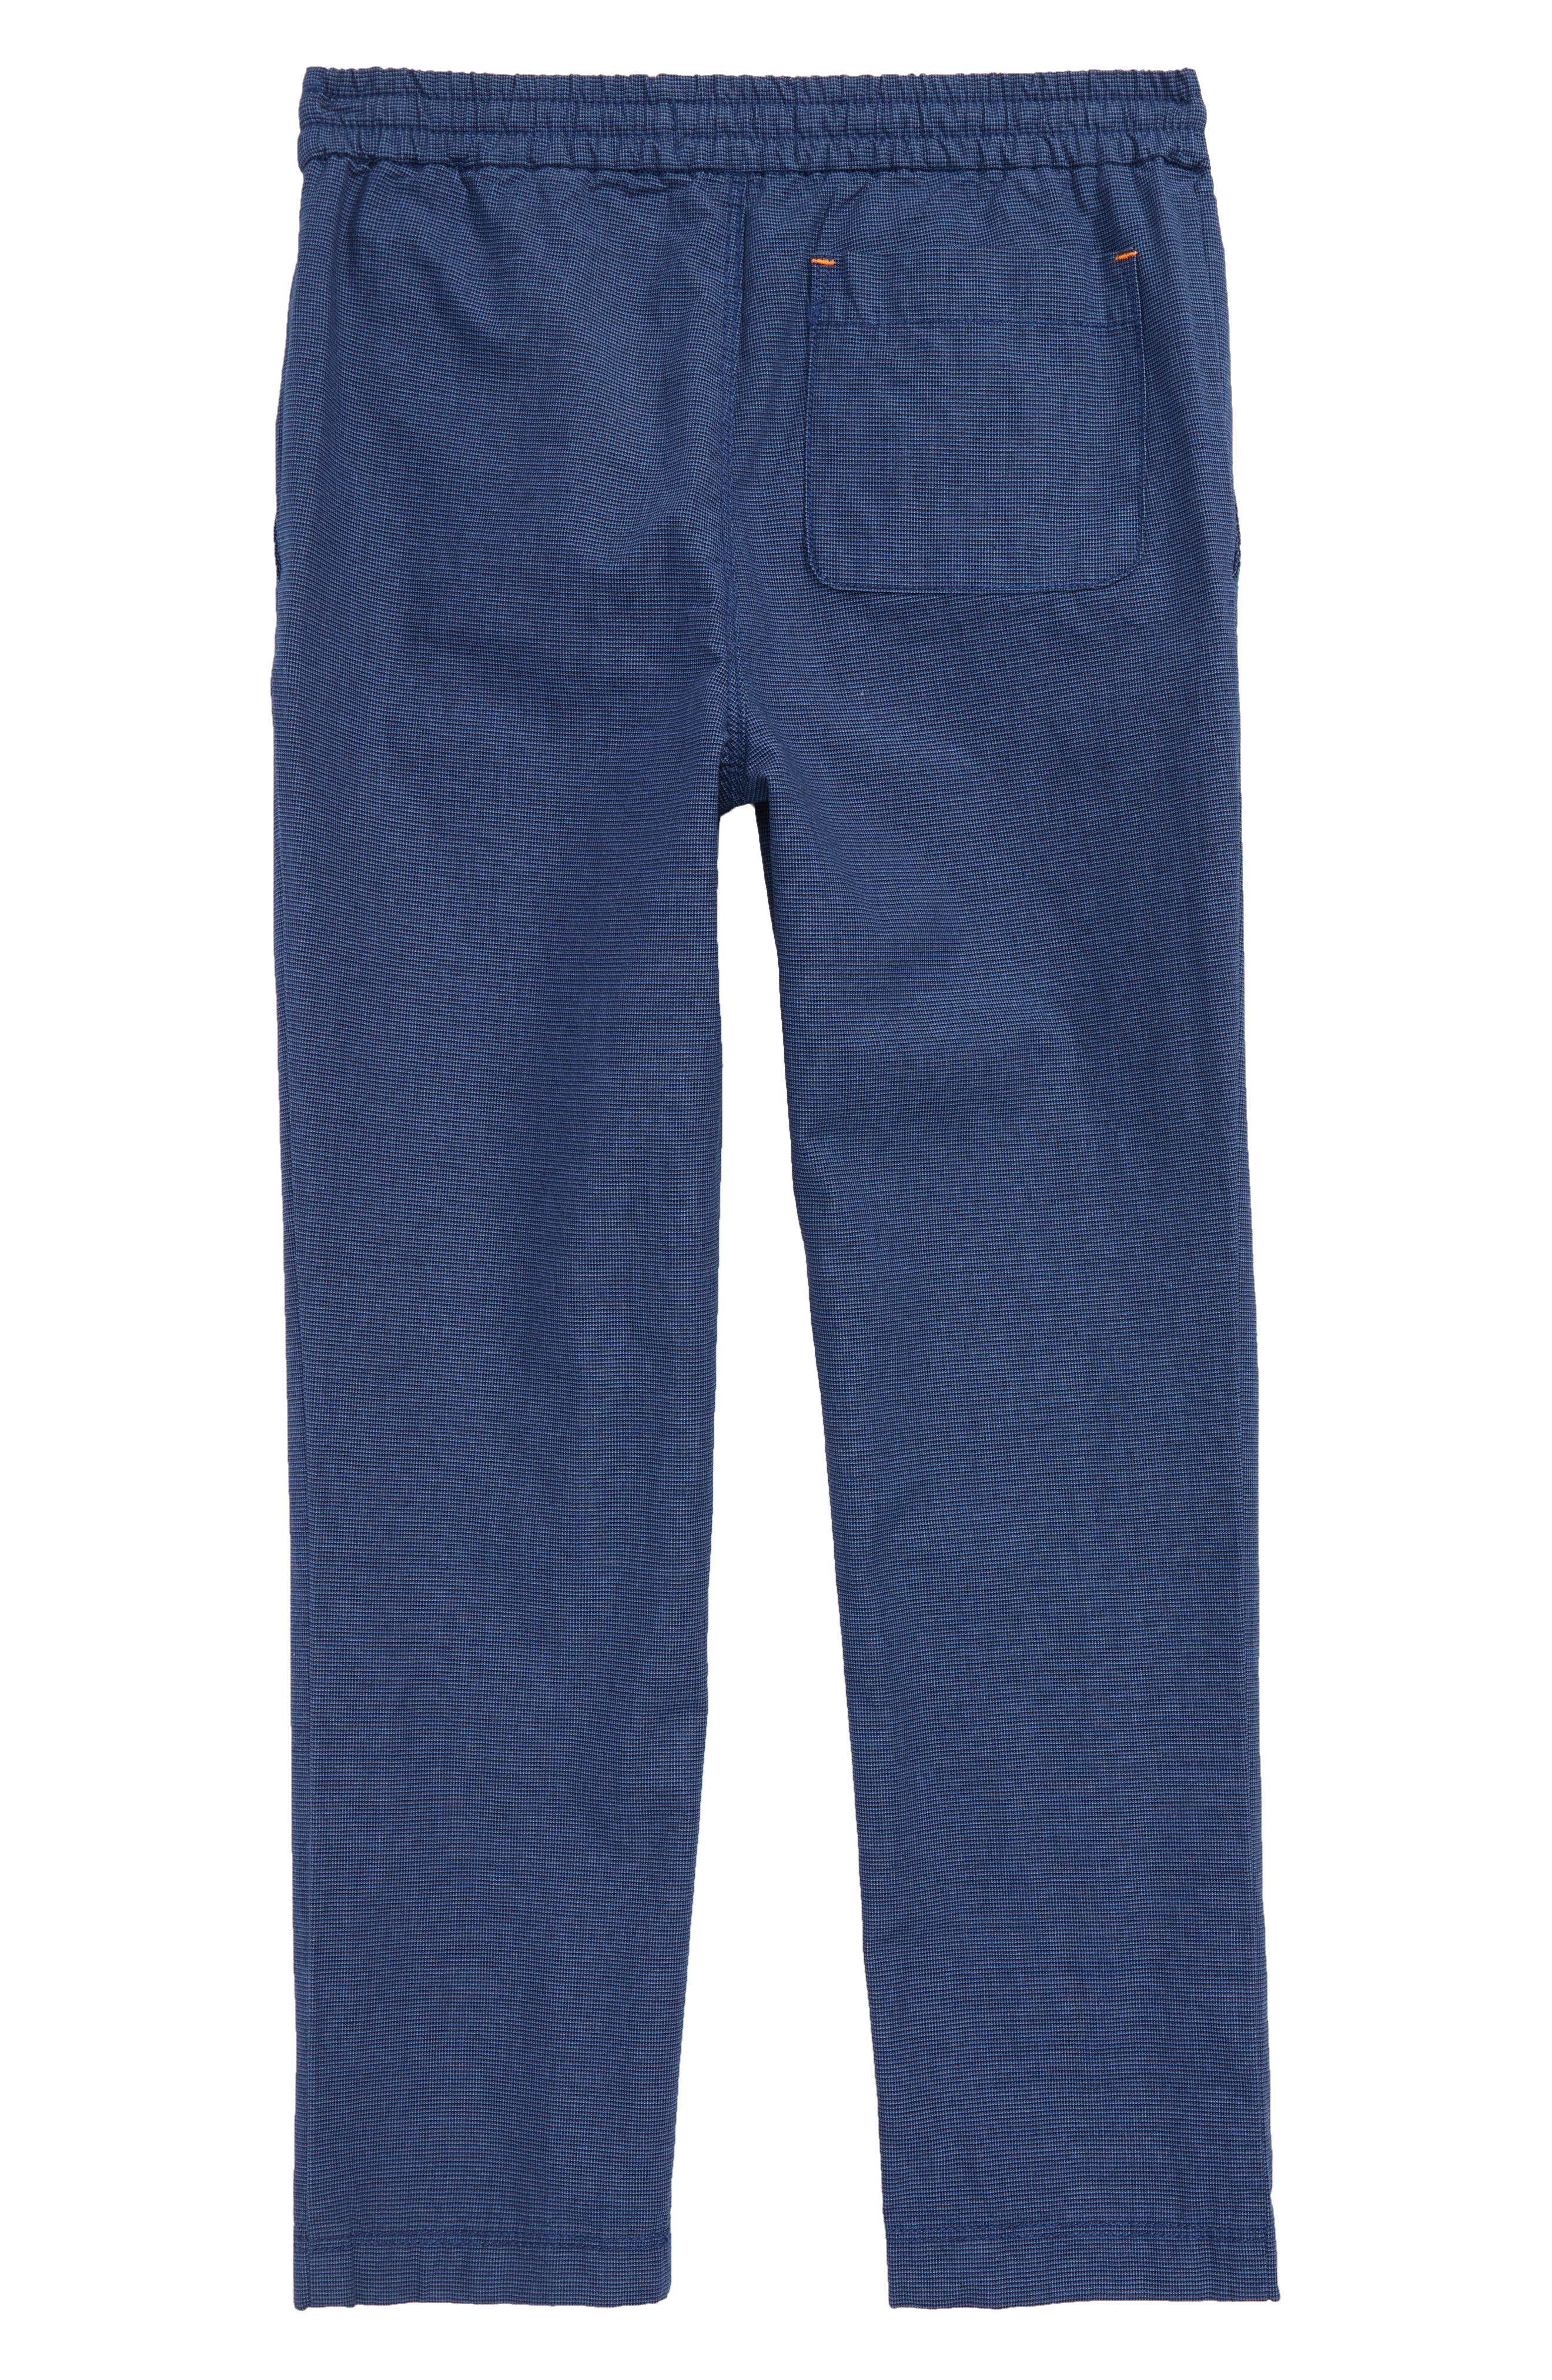 Summer Pull-On Pants,                             Alternate thumbnail 2, color,                             414